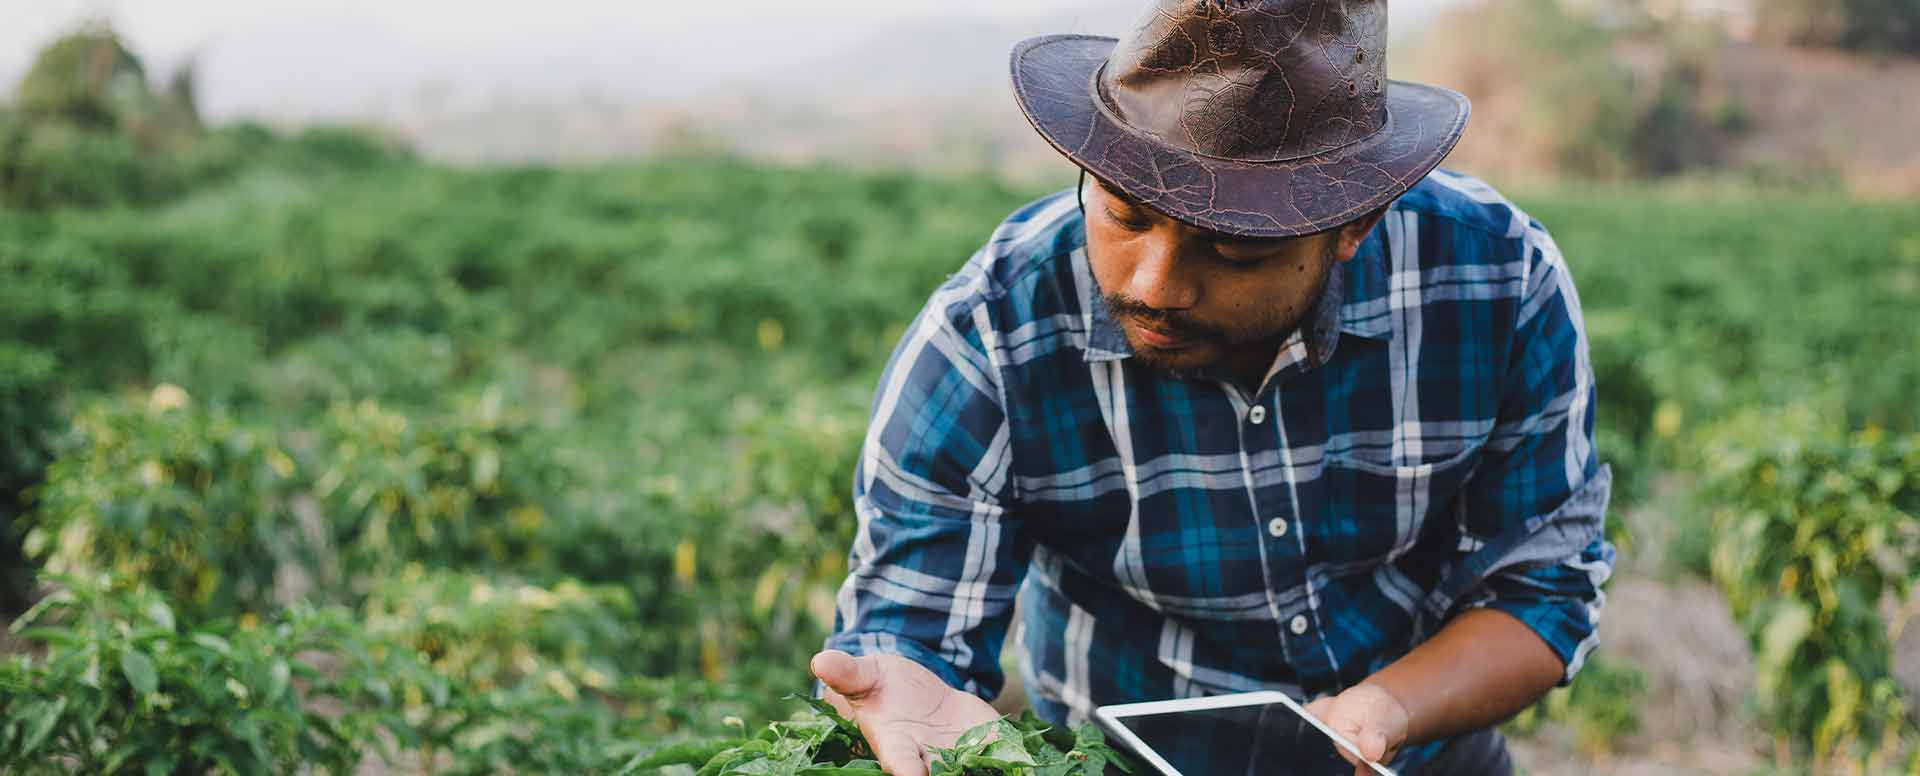 A man checking plants in field